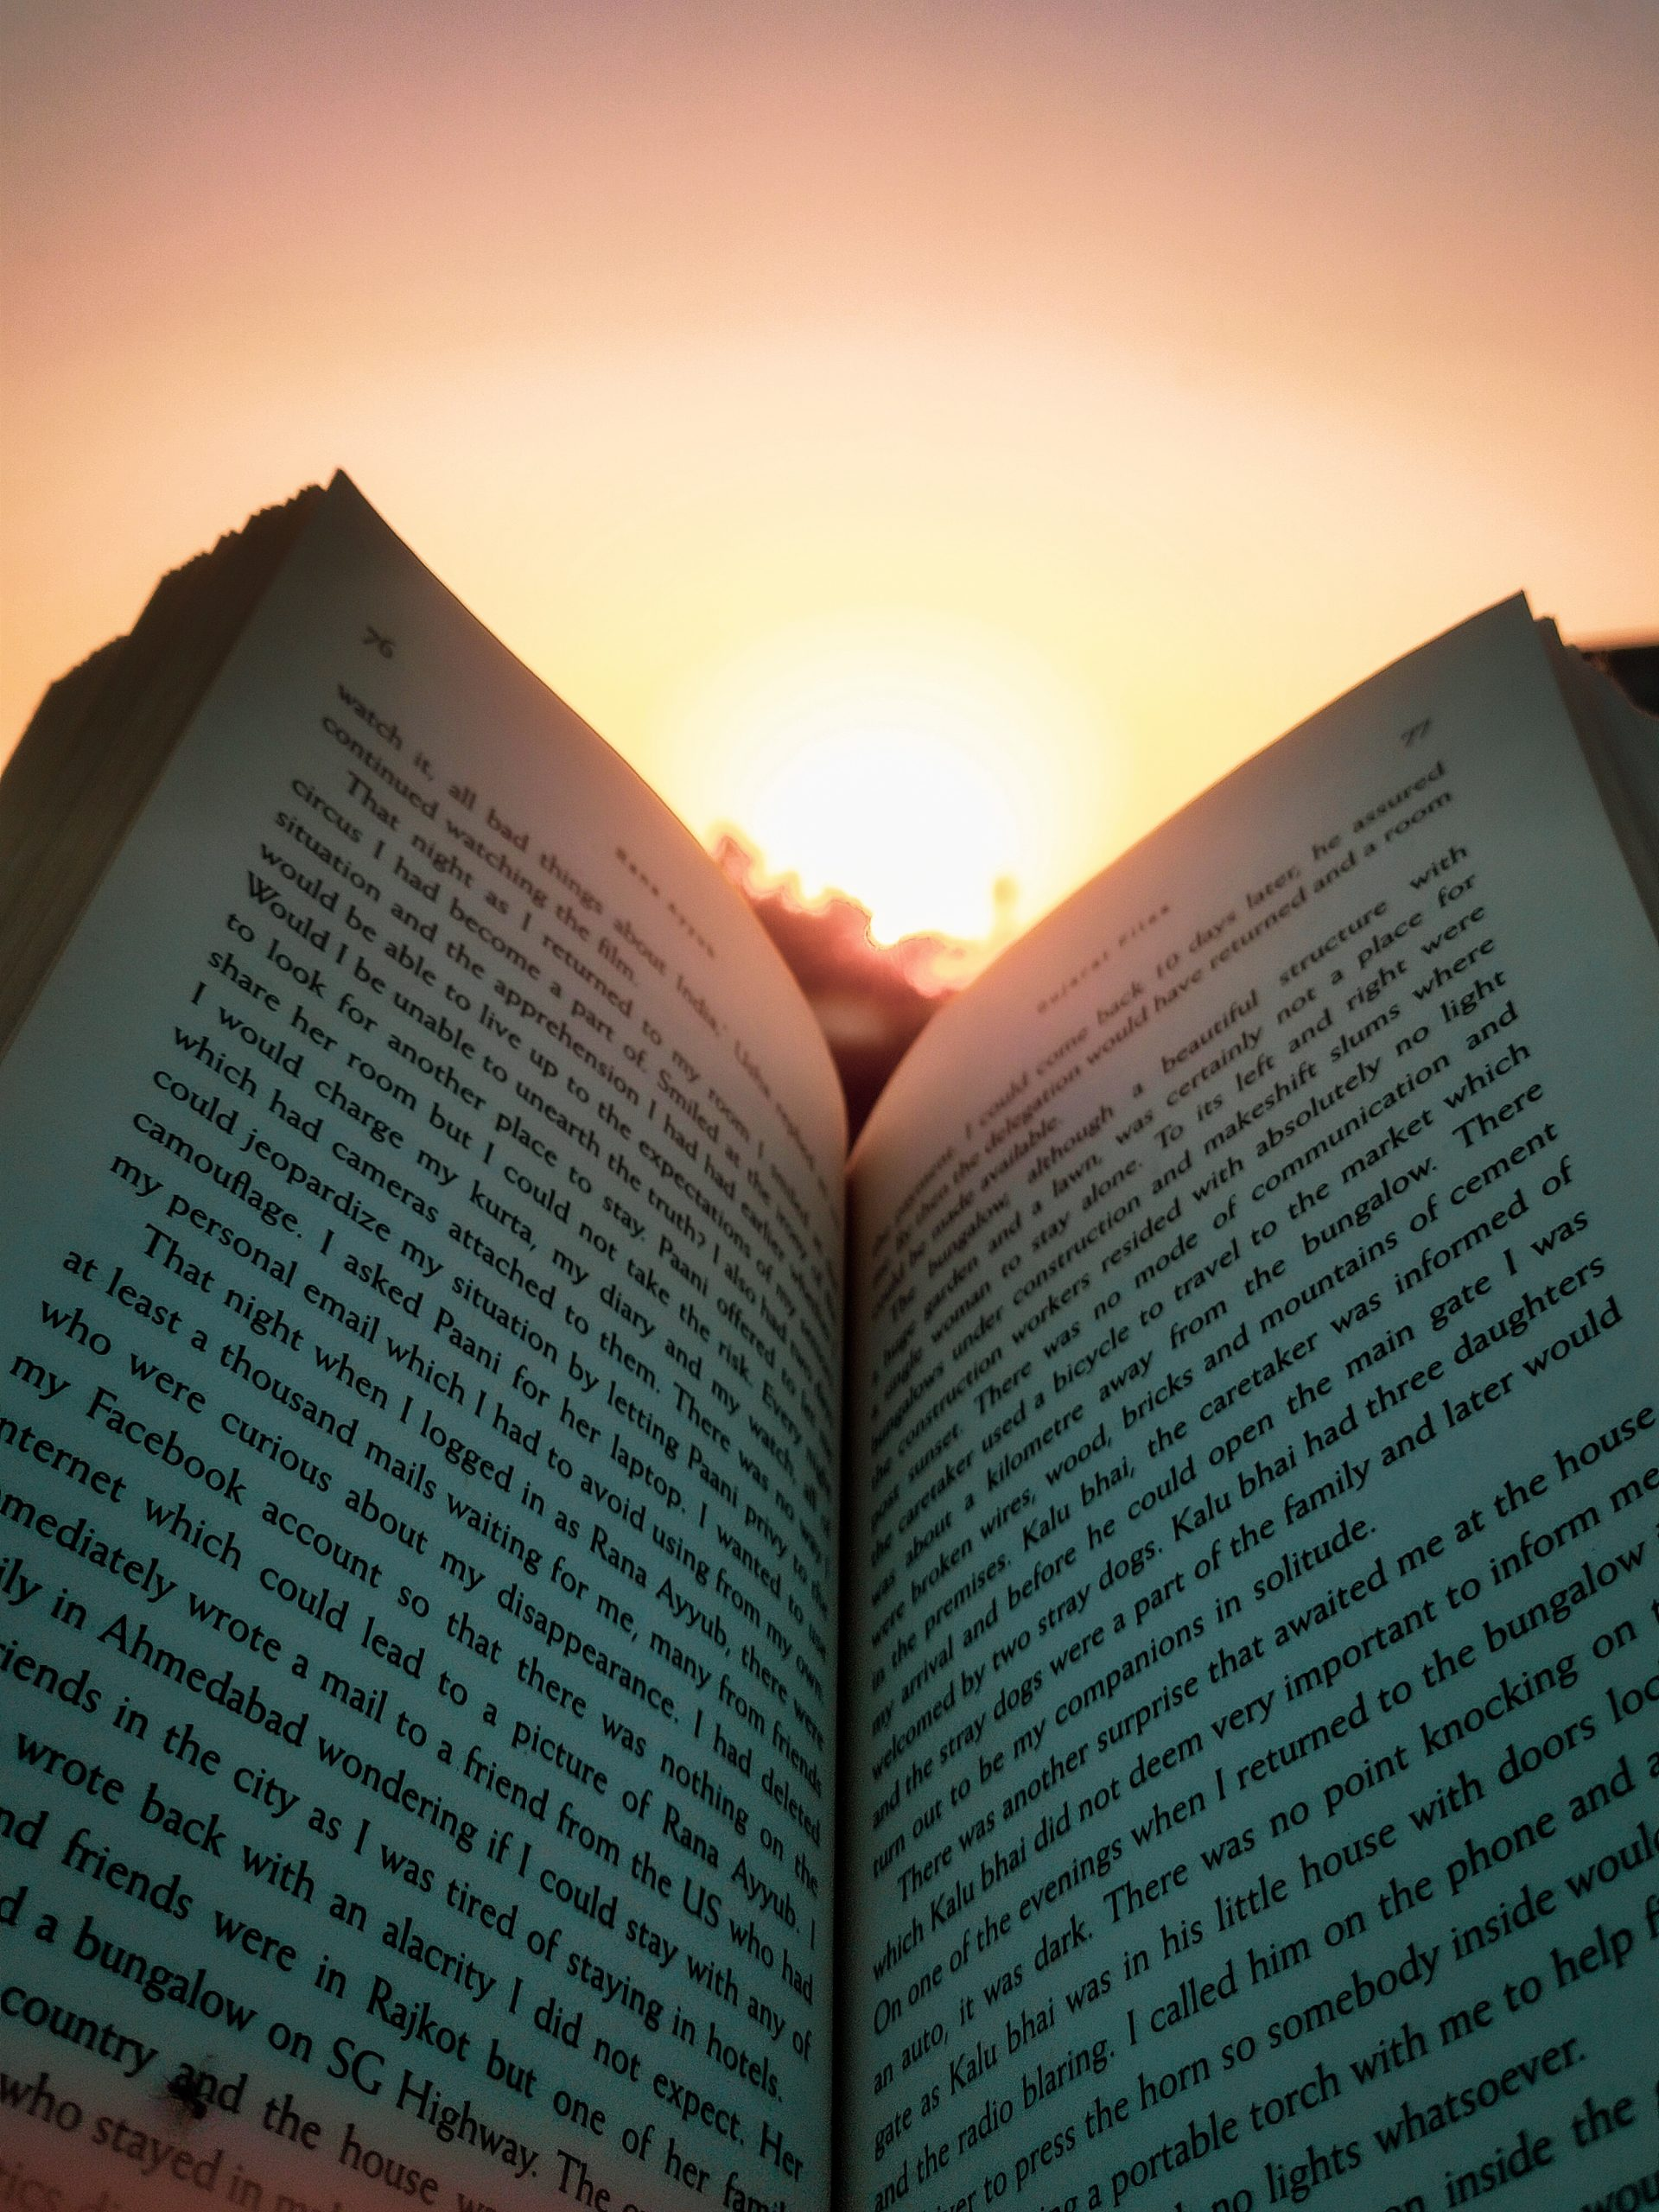 Sunset while reading a book